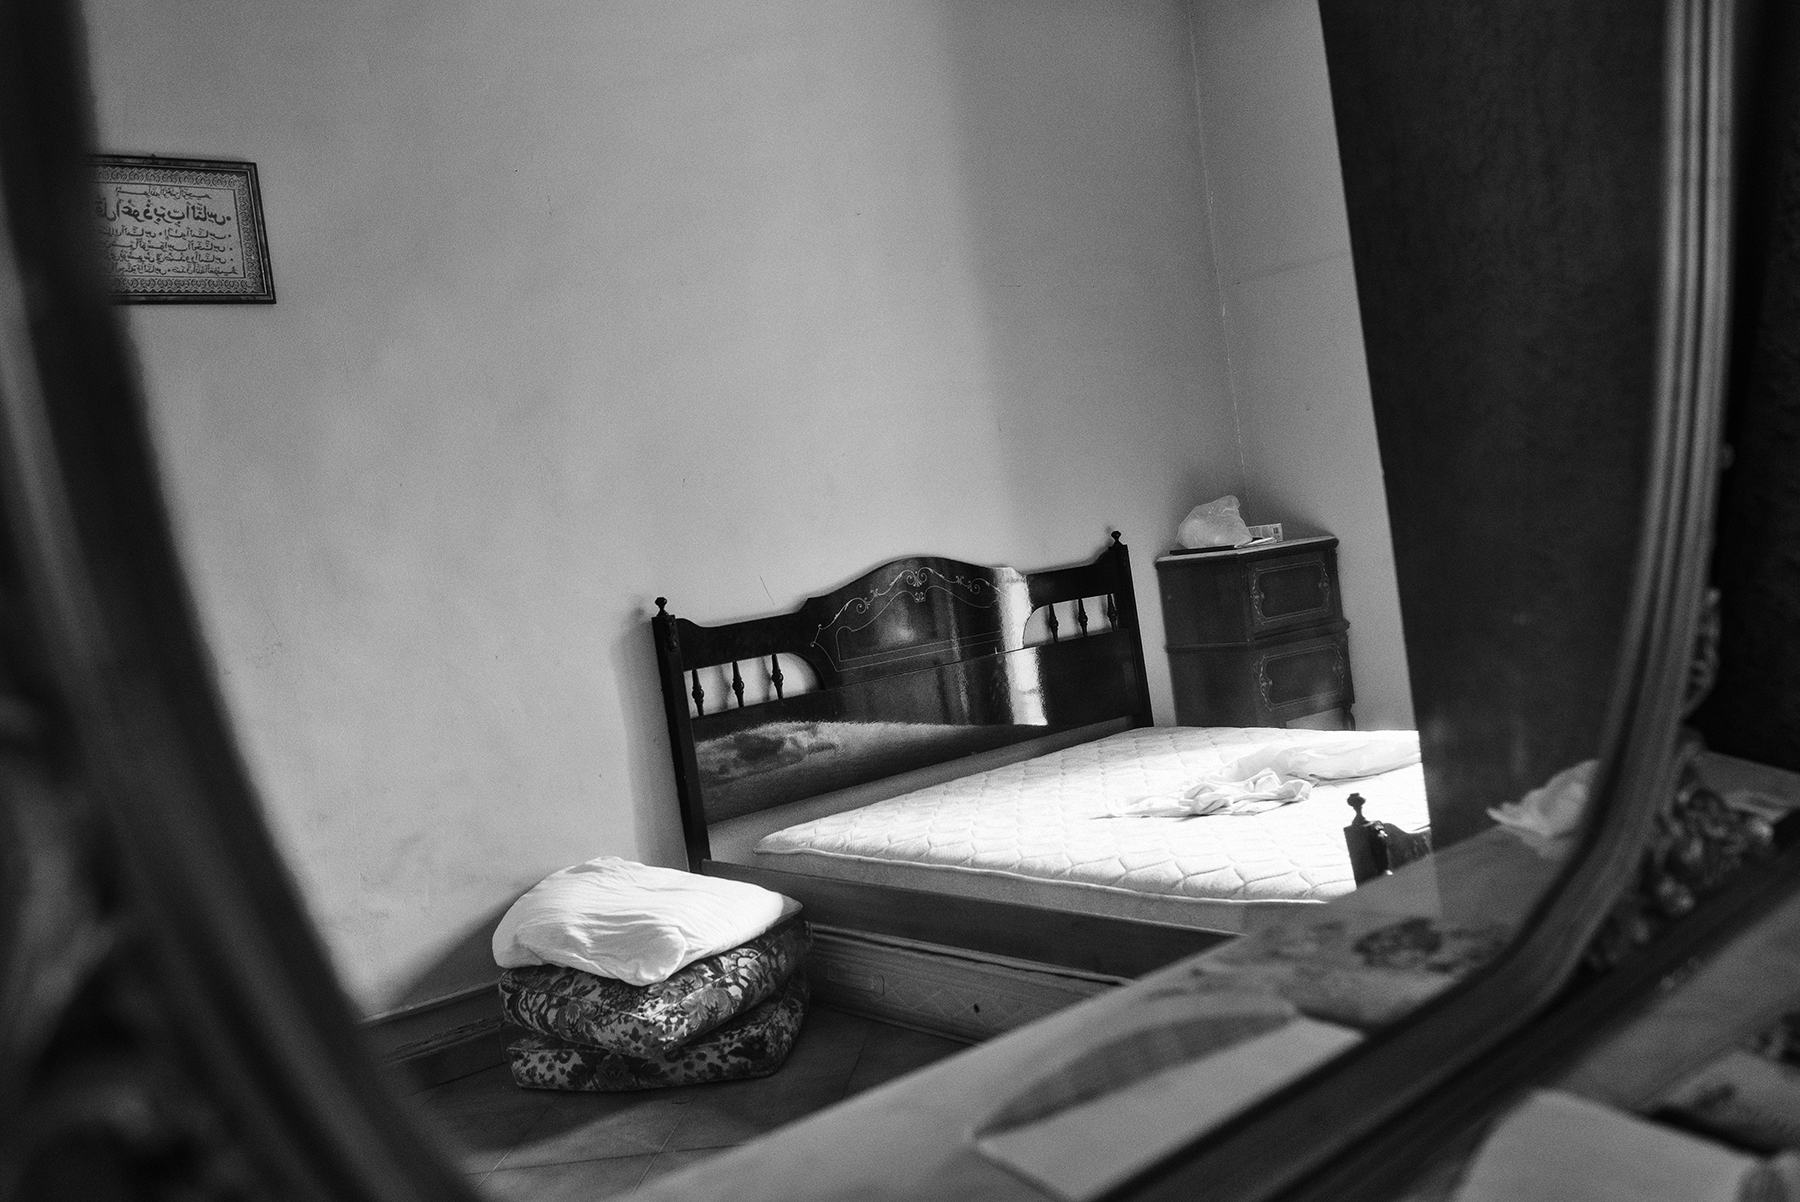 The sleeping room of an apartment inhabited by a family of four, with a shared toilet on the balcony, in the working class district of Barriera di Milano in Turin; July 2017.